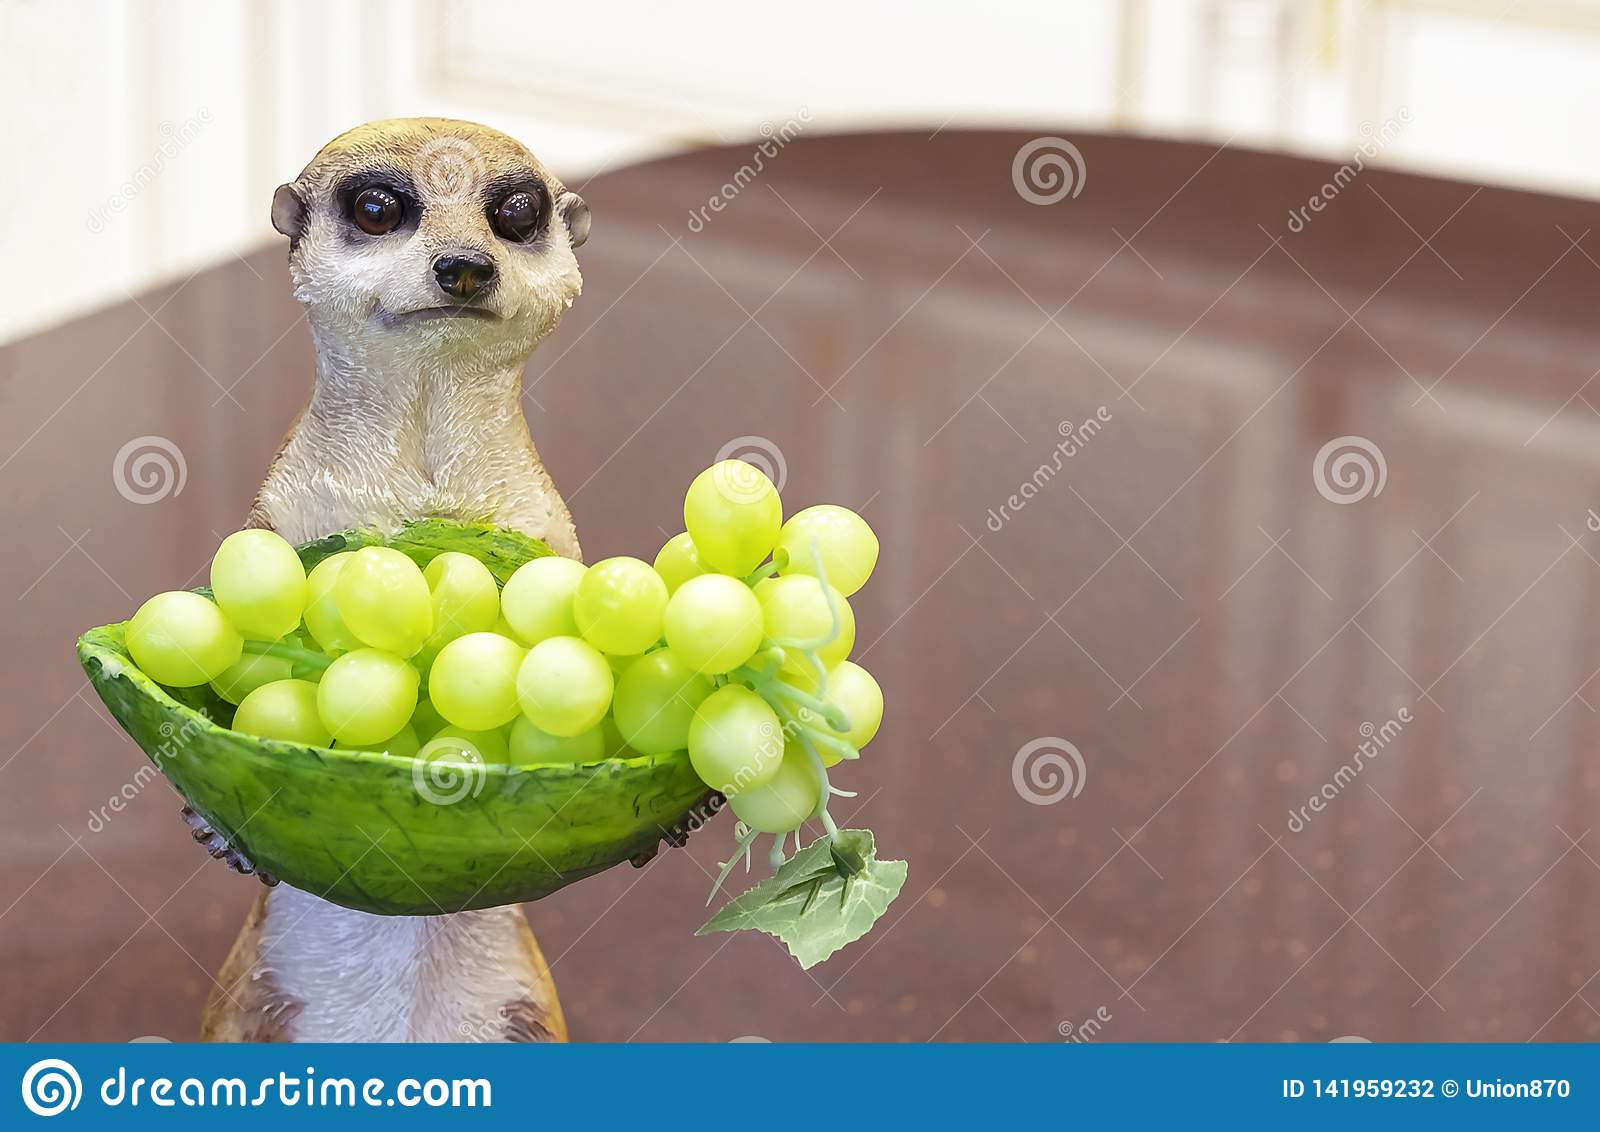 Ceramic figurine of a meerkat with a vase of grapes